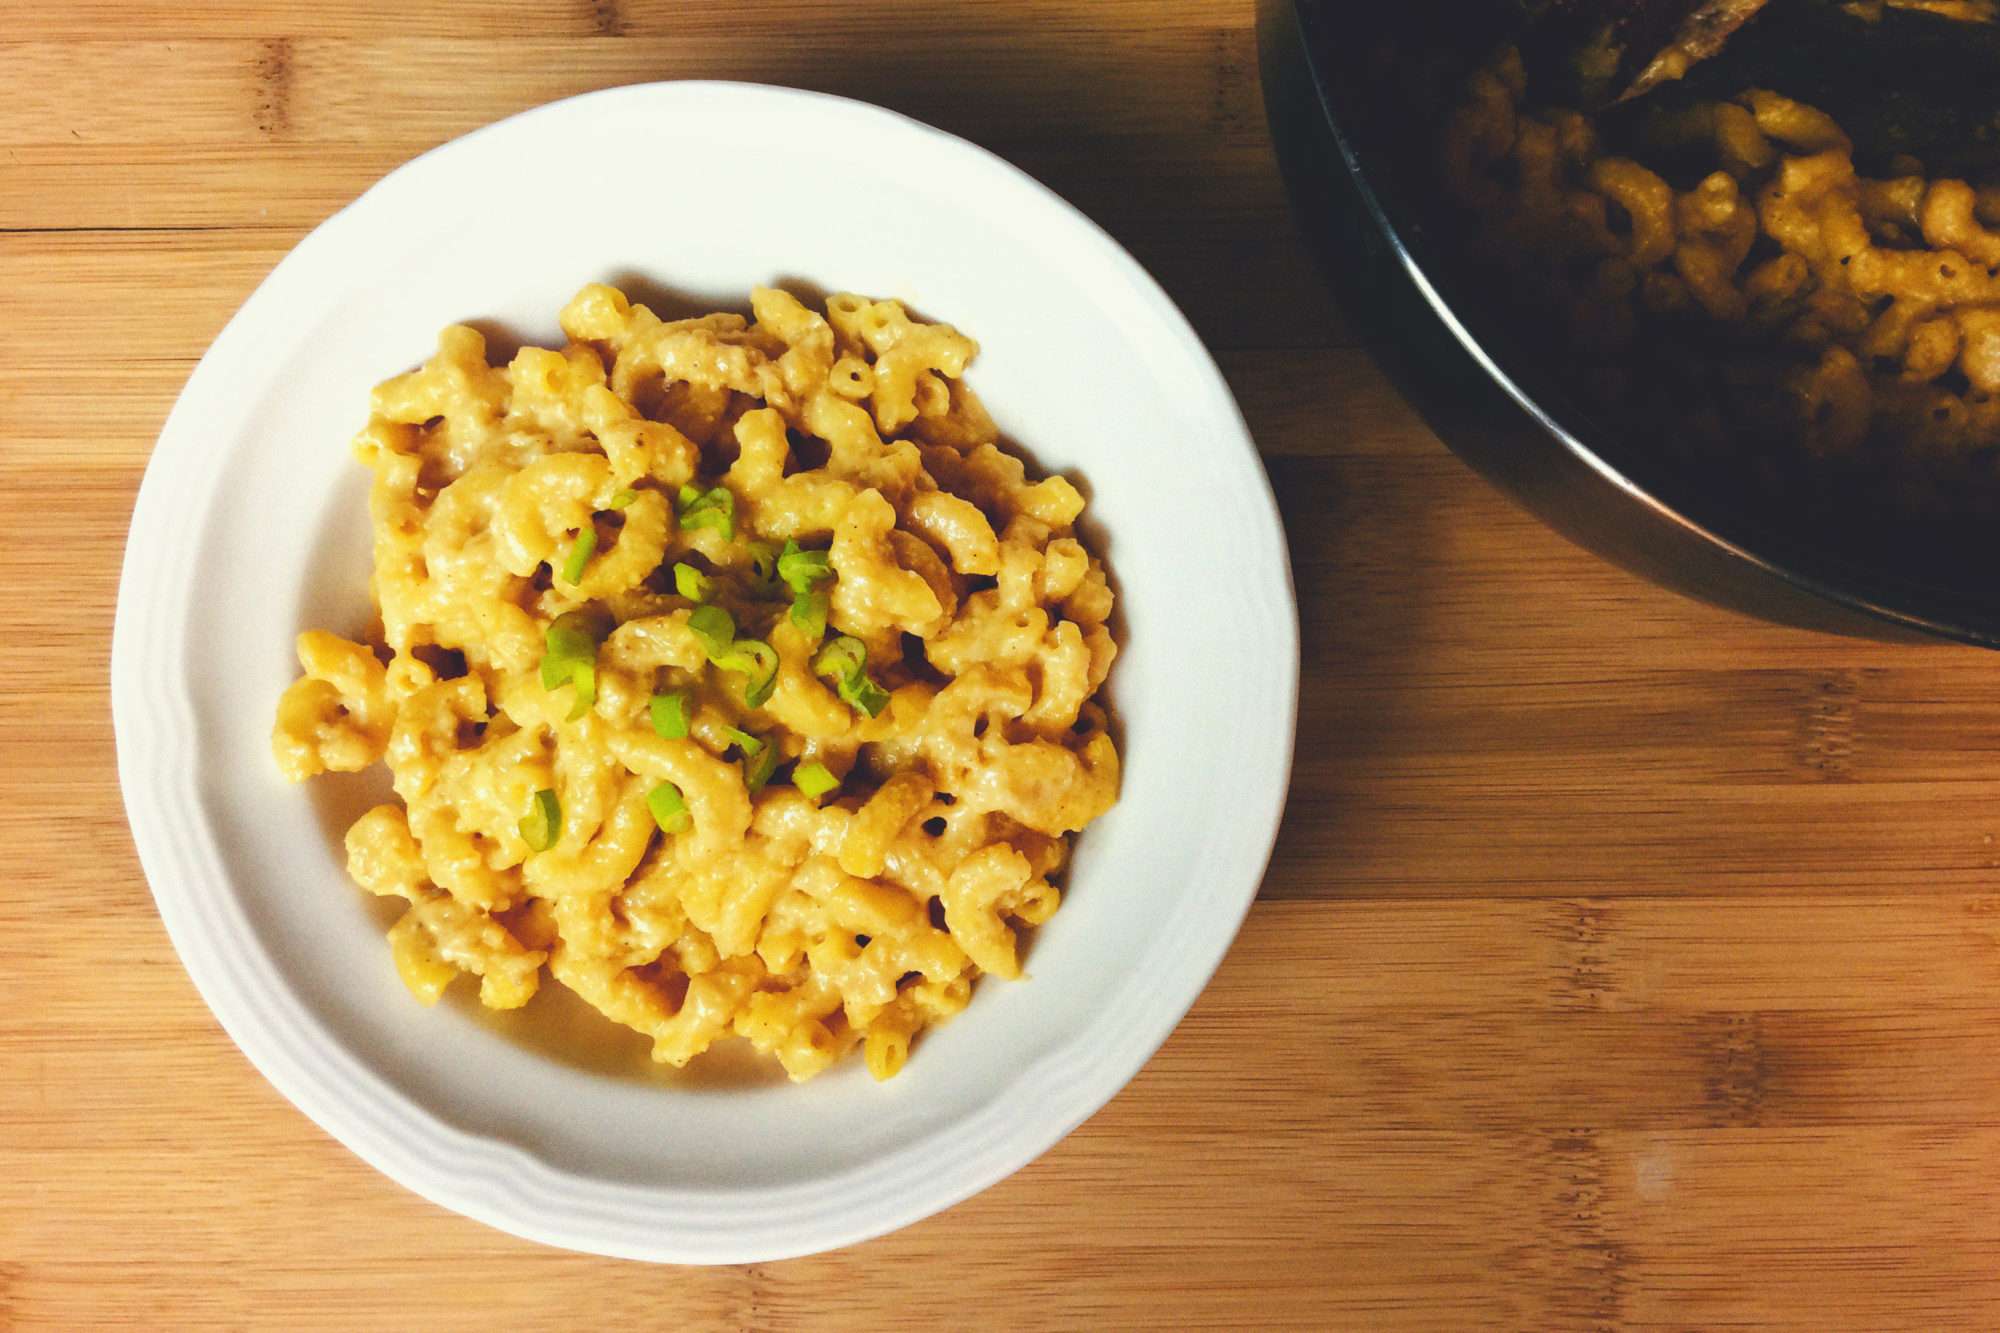 Unbelievable 1-Pot Vegan Mac & Cheese